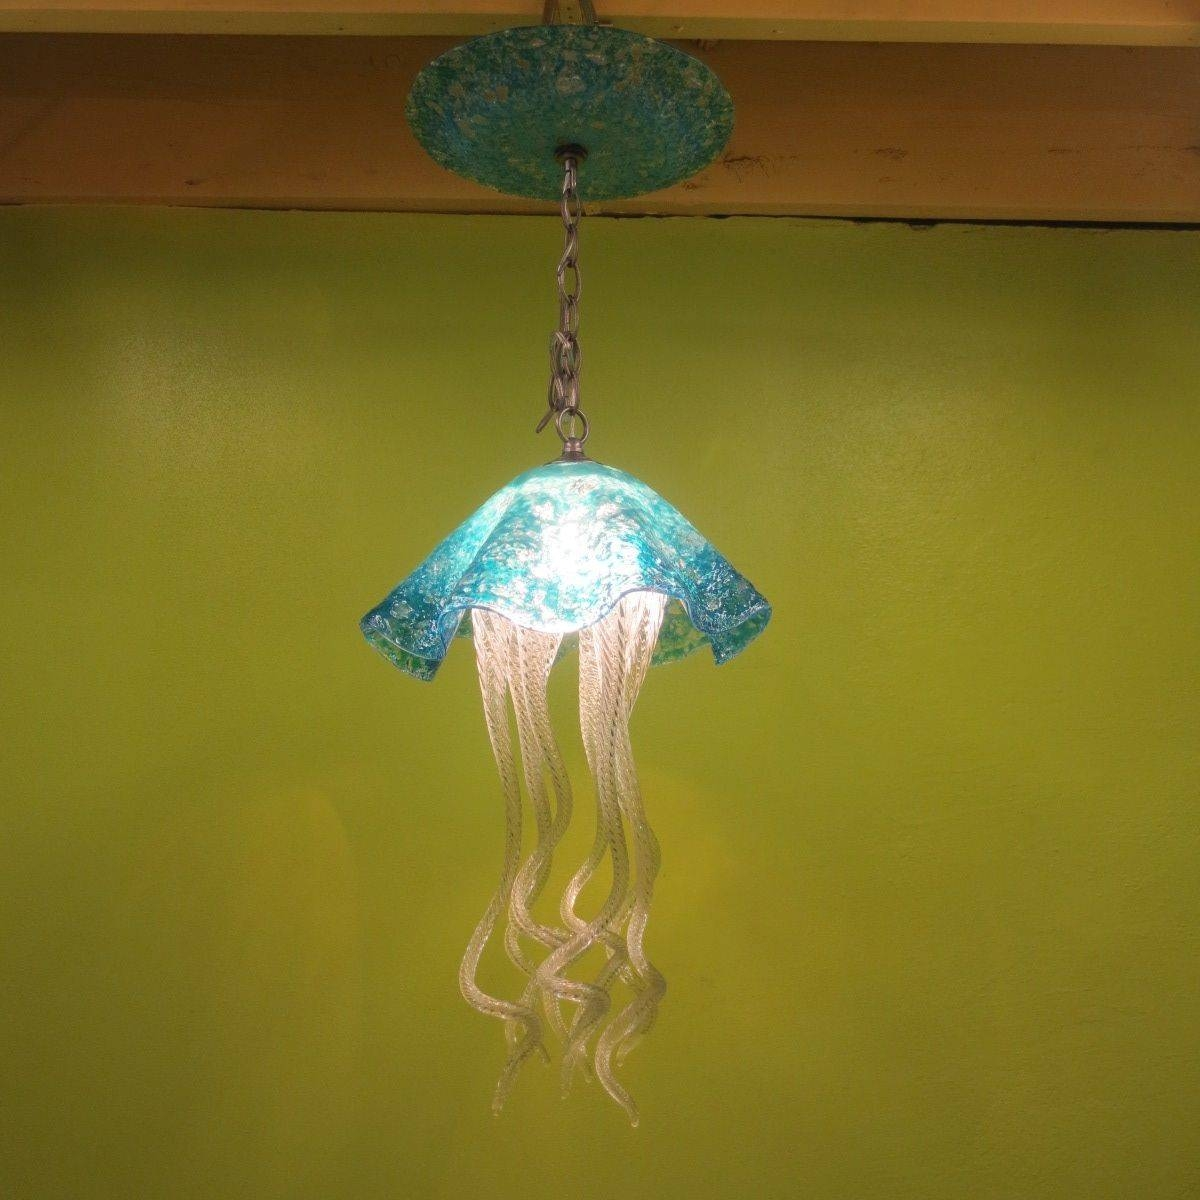 Buy A Hand Made Jellyfish Pendant Light - Turquoise Jellyfish throughout Jellyfish Pendant Lights (Image 4 of 15)